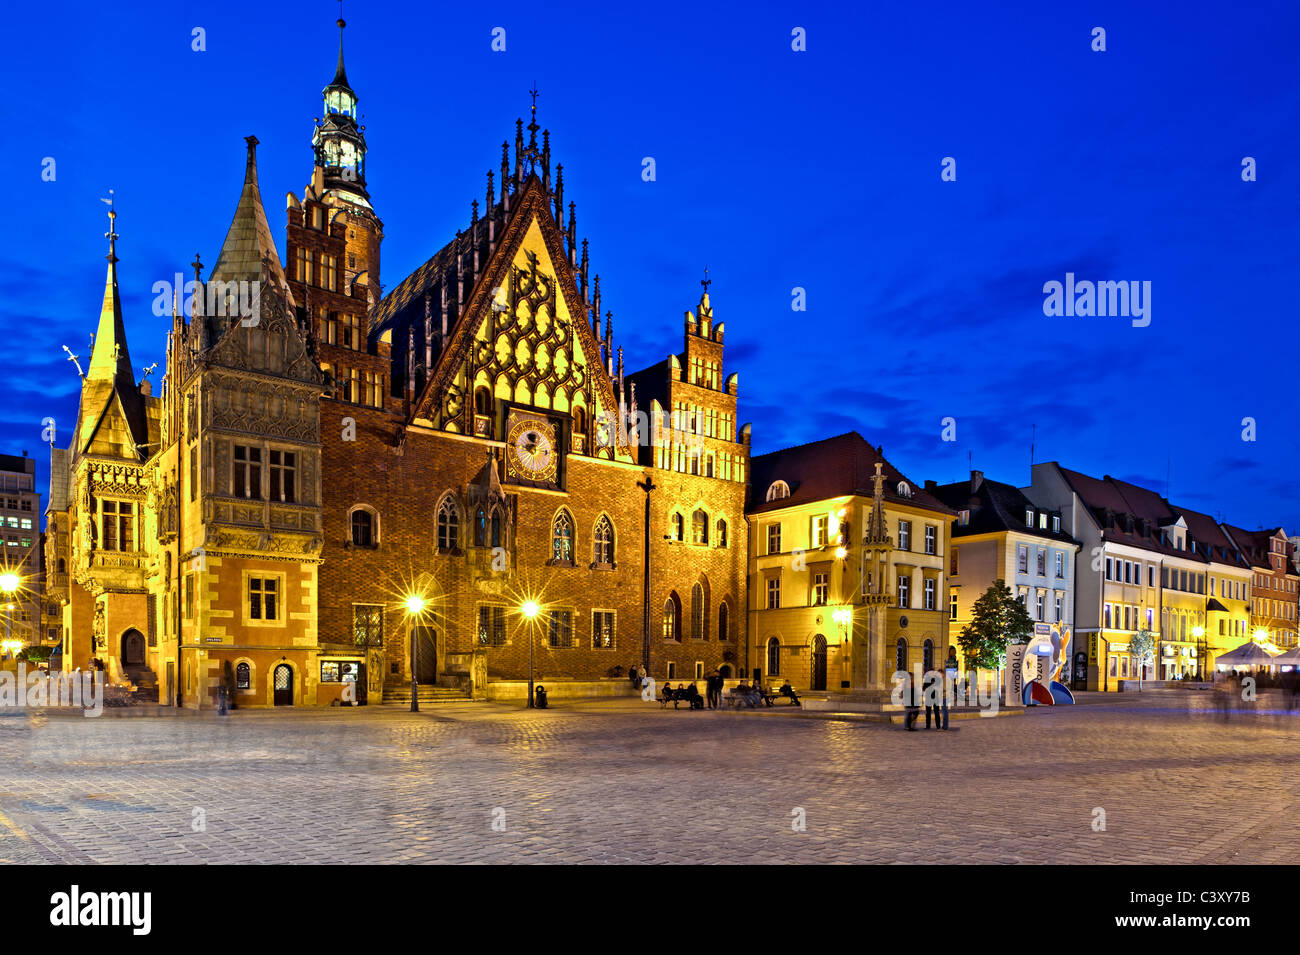 Town Hall, Old Town, Wroclaw, Poland - Stock Image